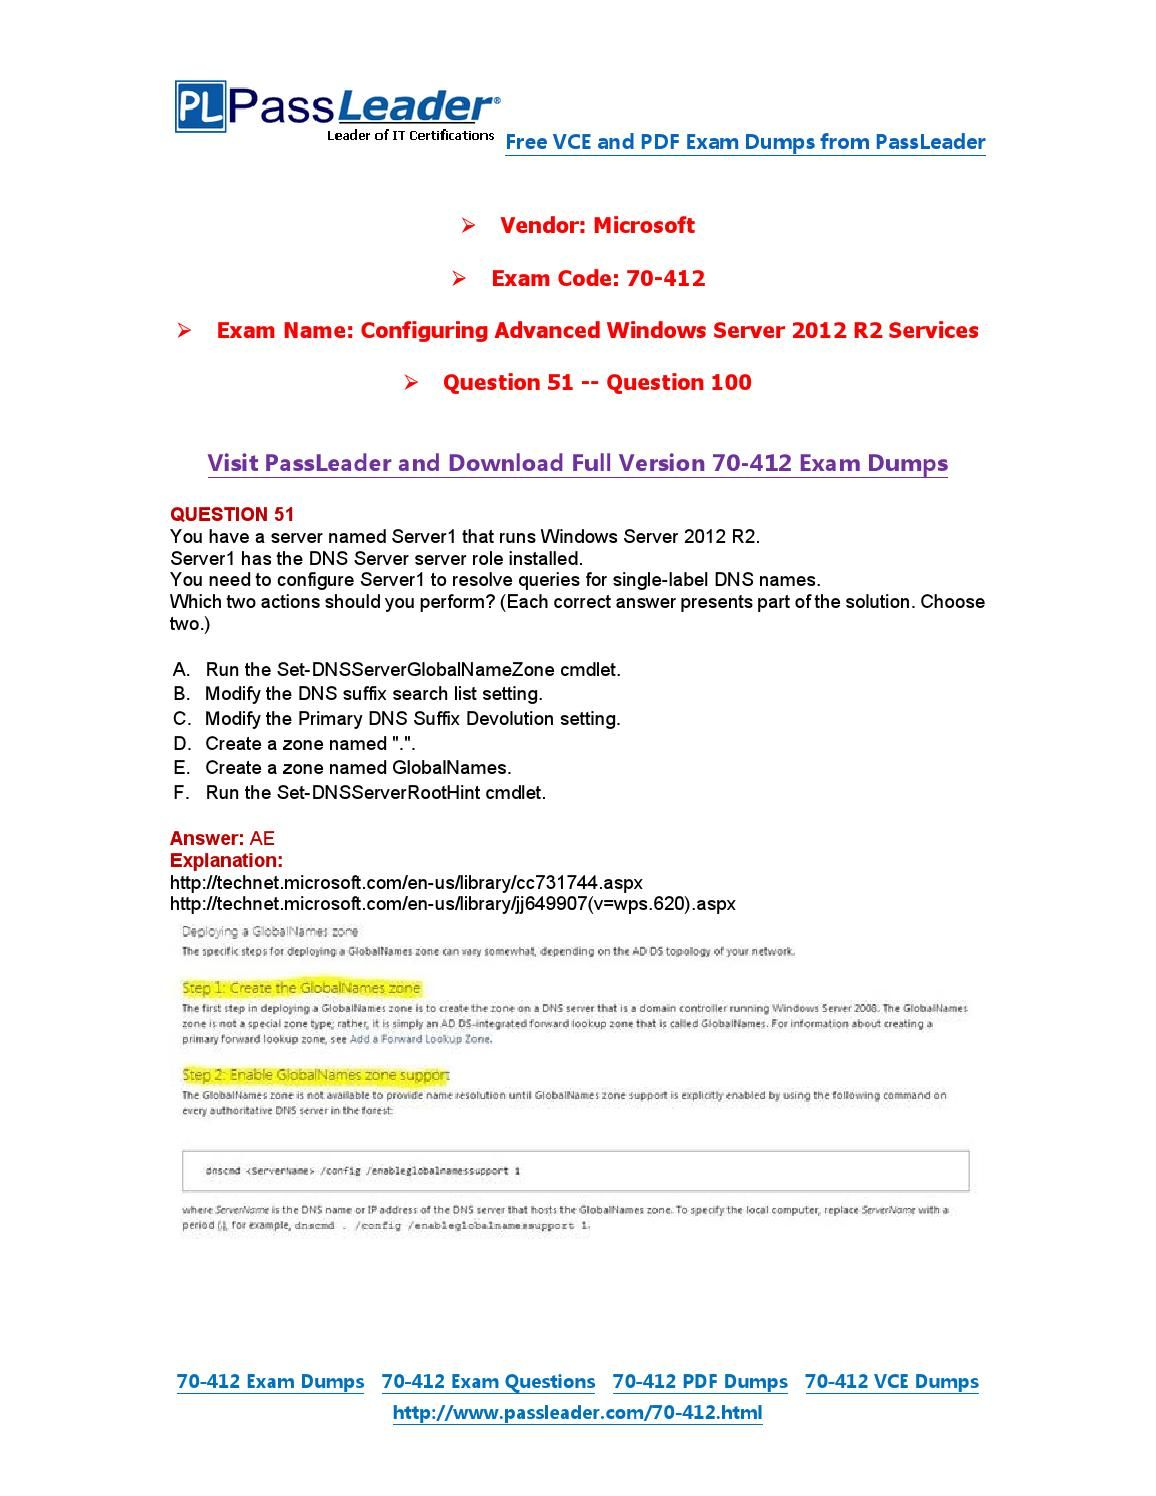 70 412 Exam Dumps With Pdf And Vce Download 51 100 70 412 Exam